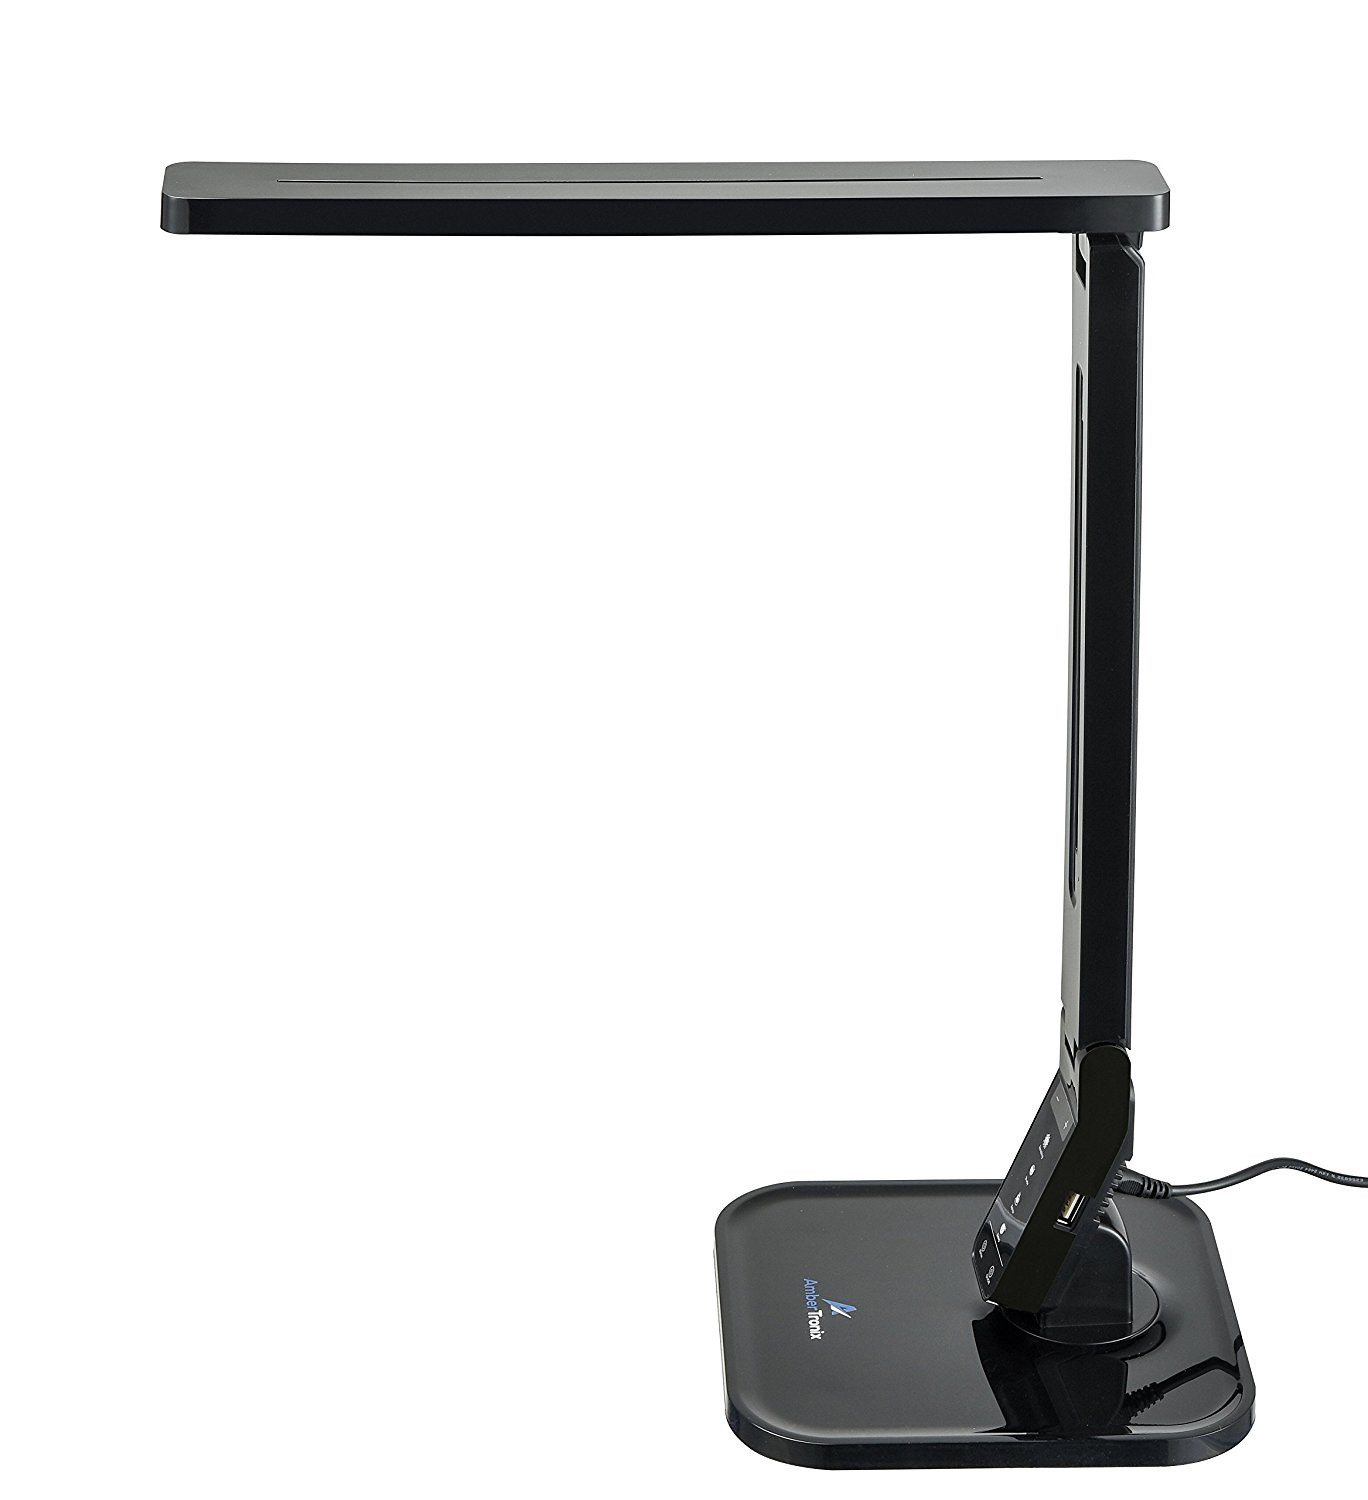 Best ideas about Amazon Led Desk Lamp . Save or Pin Elegant Desk Lamp Amazon Lightaccents Led Desk Lamp Now.